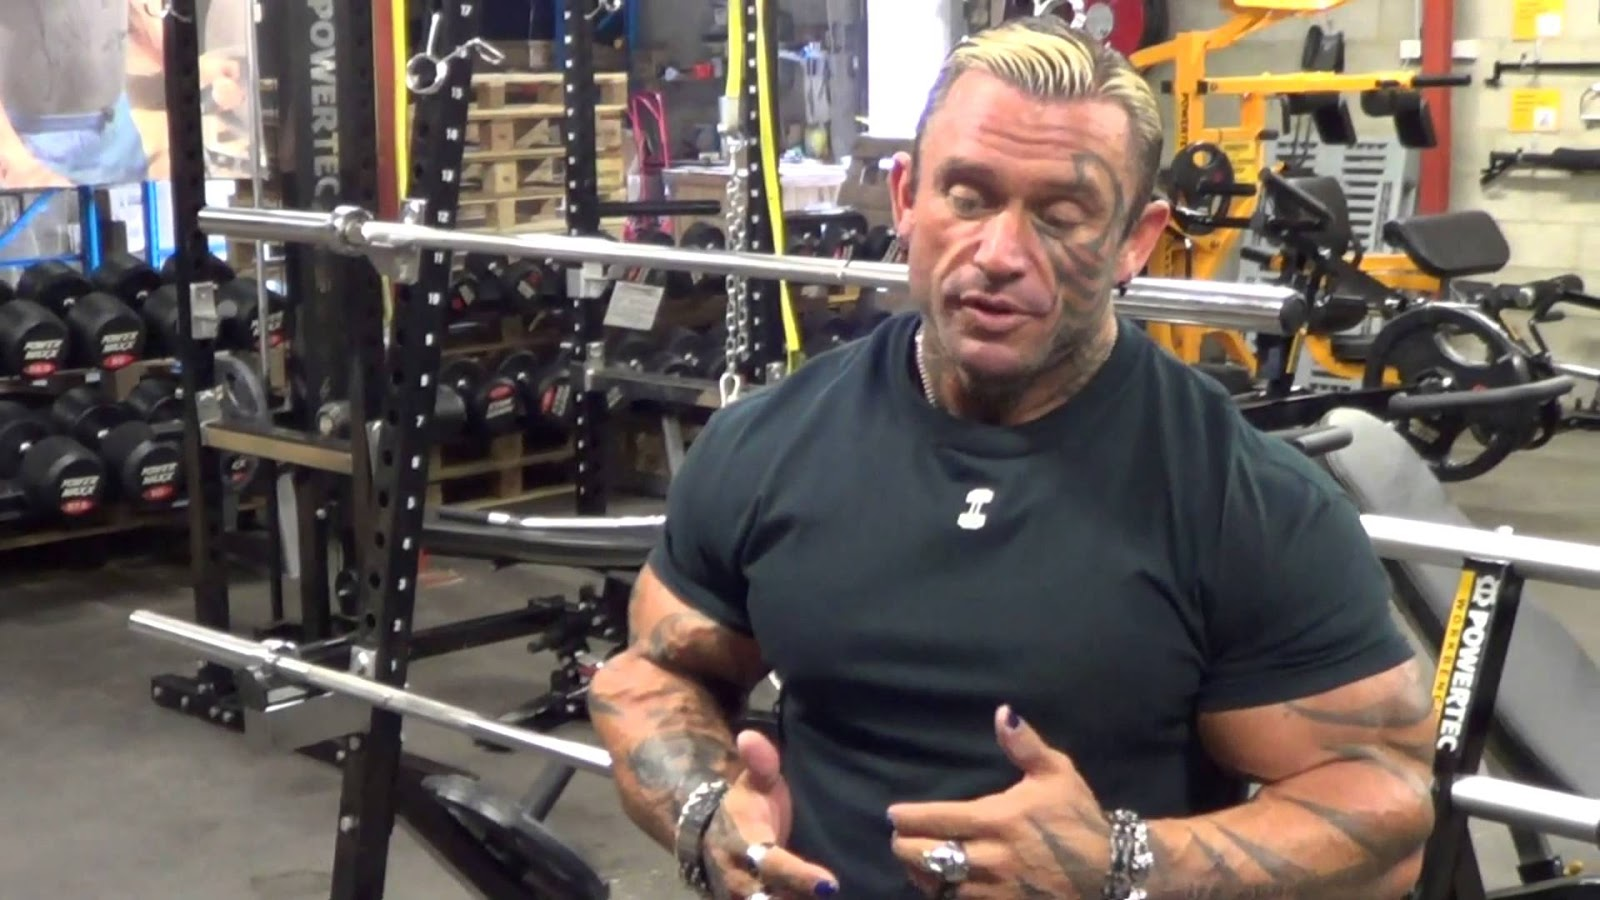 Image result for Lee Priest Steroids